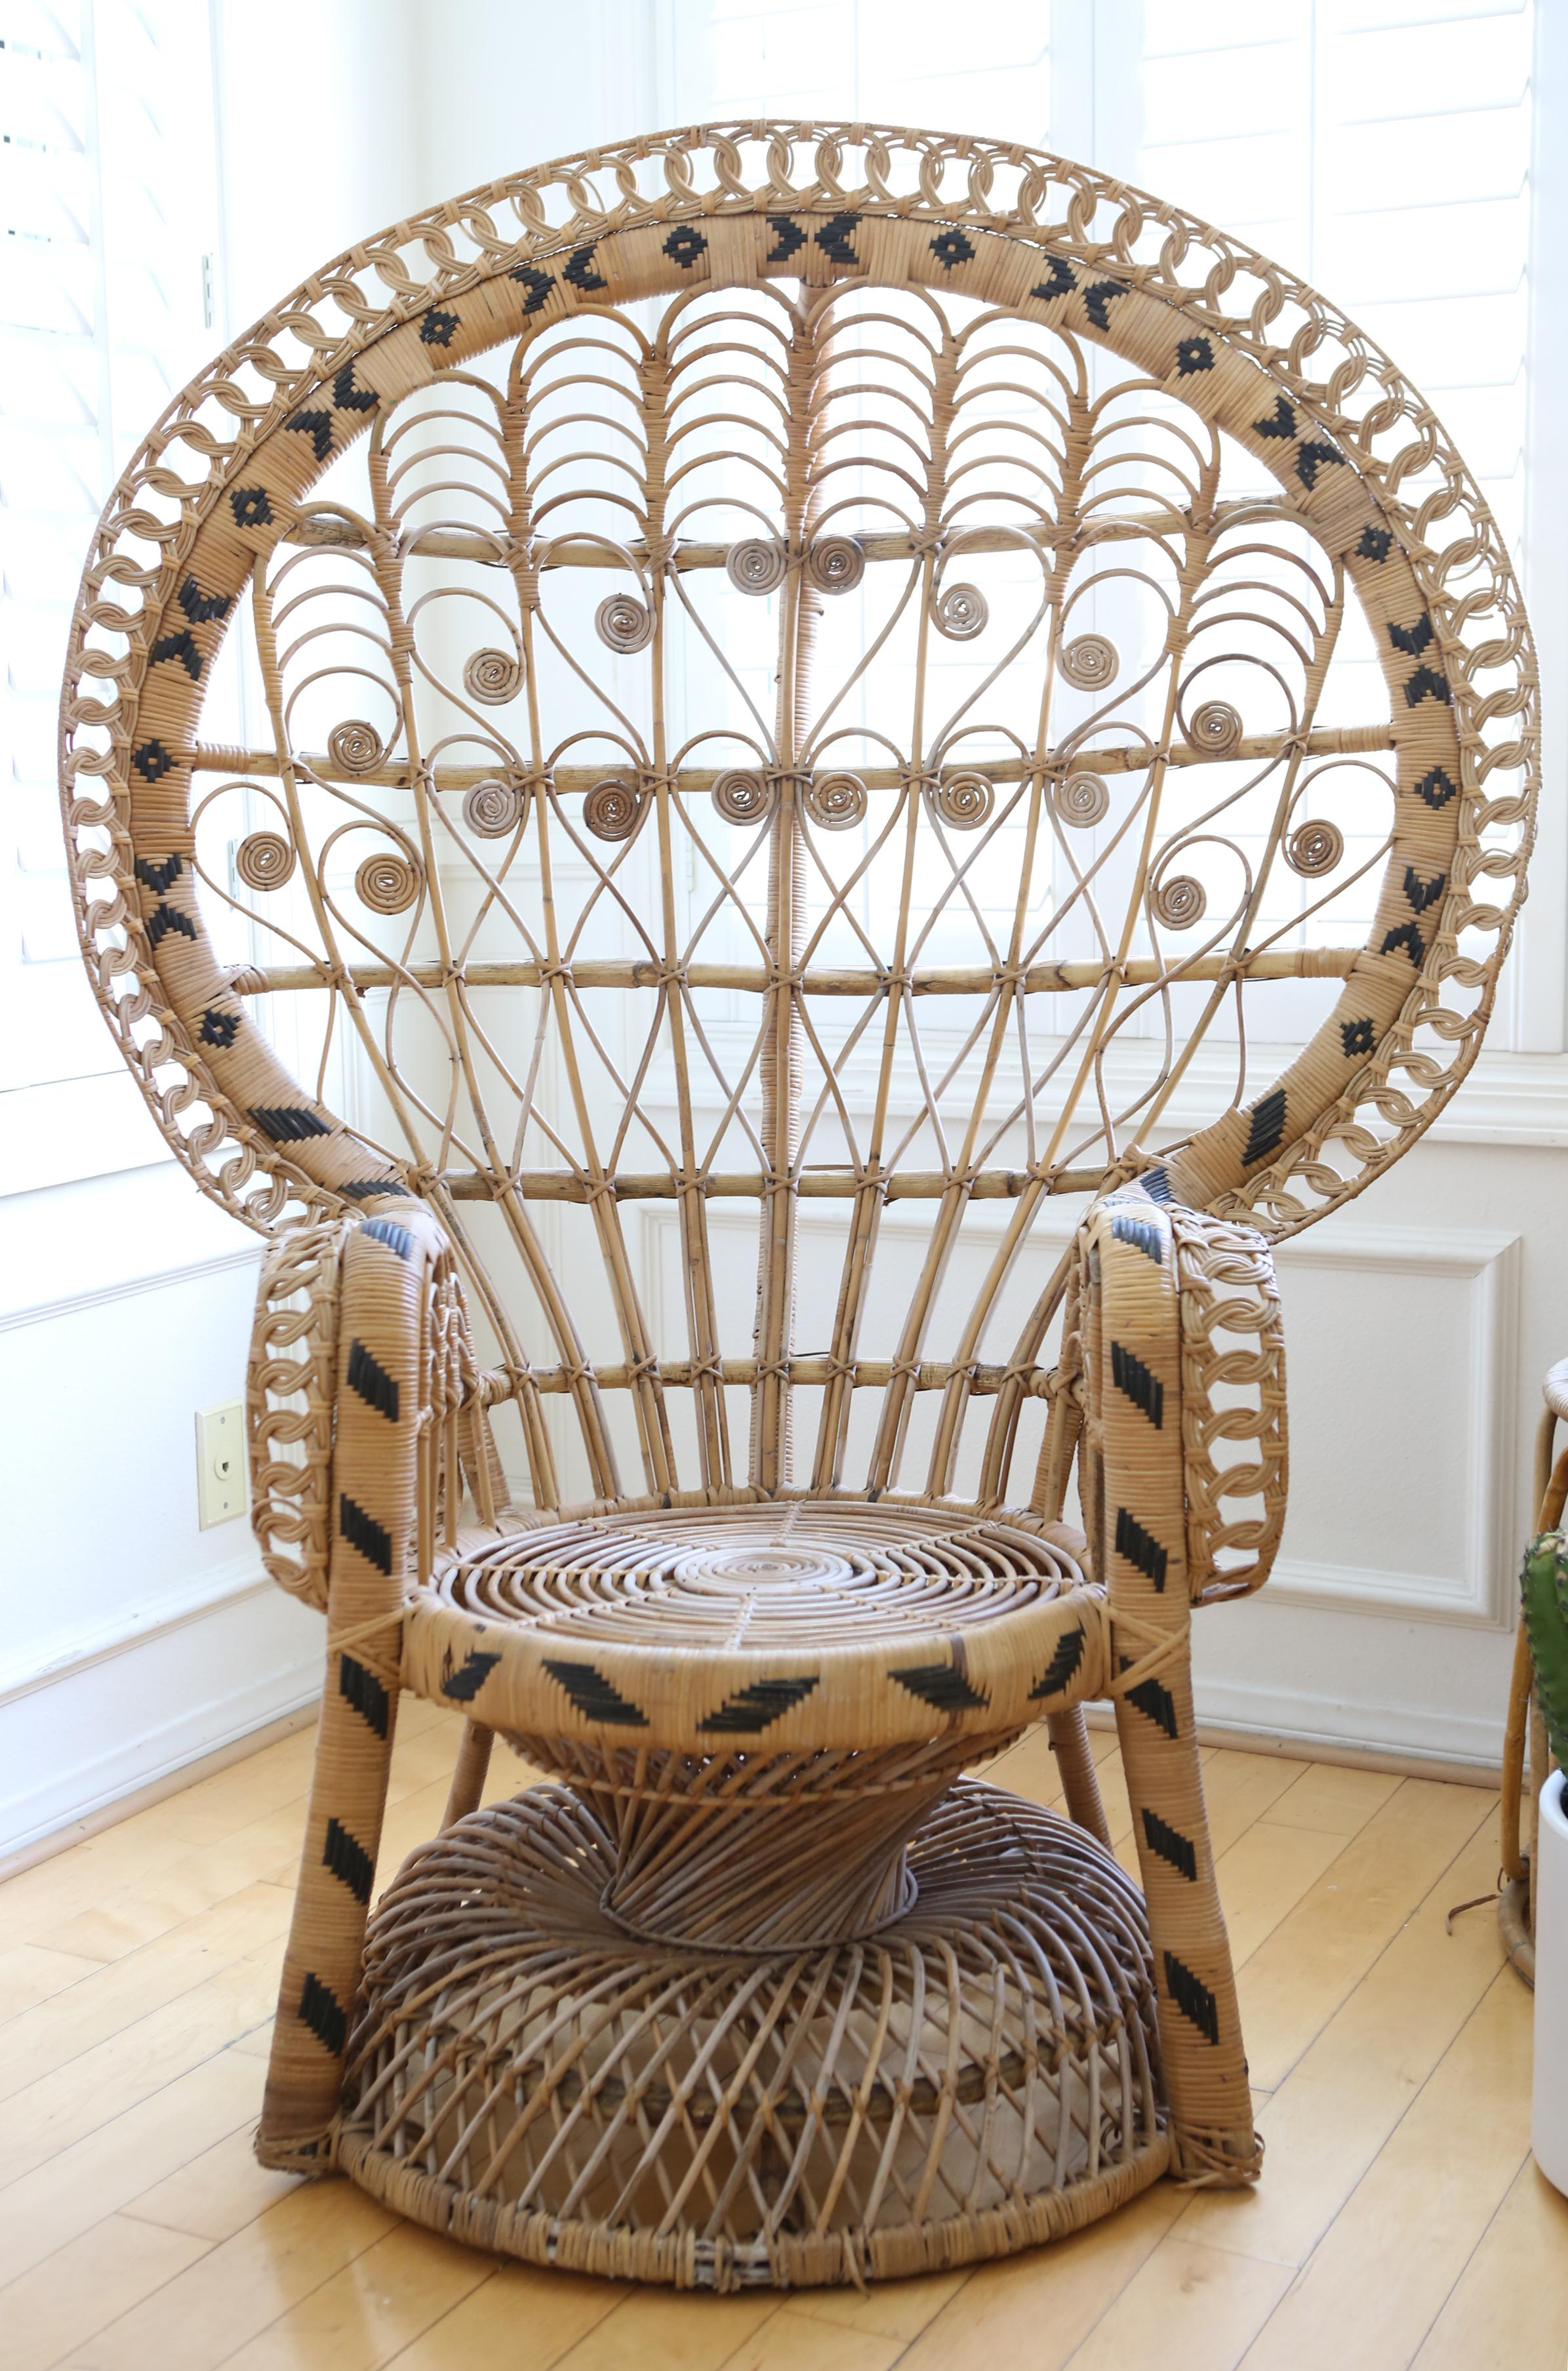 vintage peacock chair jazzy battery rattan and wicker chairish the eye catching design of this gives it an elegant presence no matter